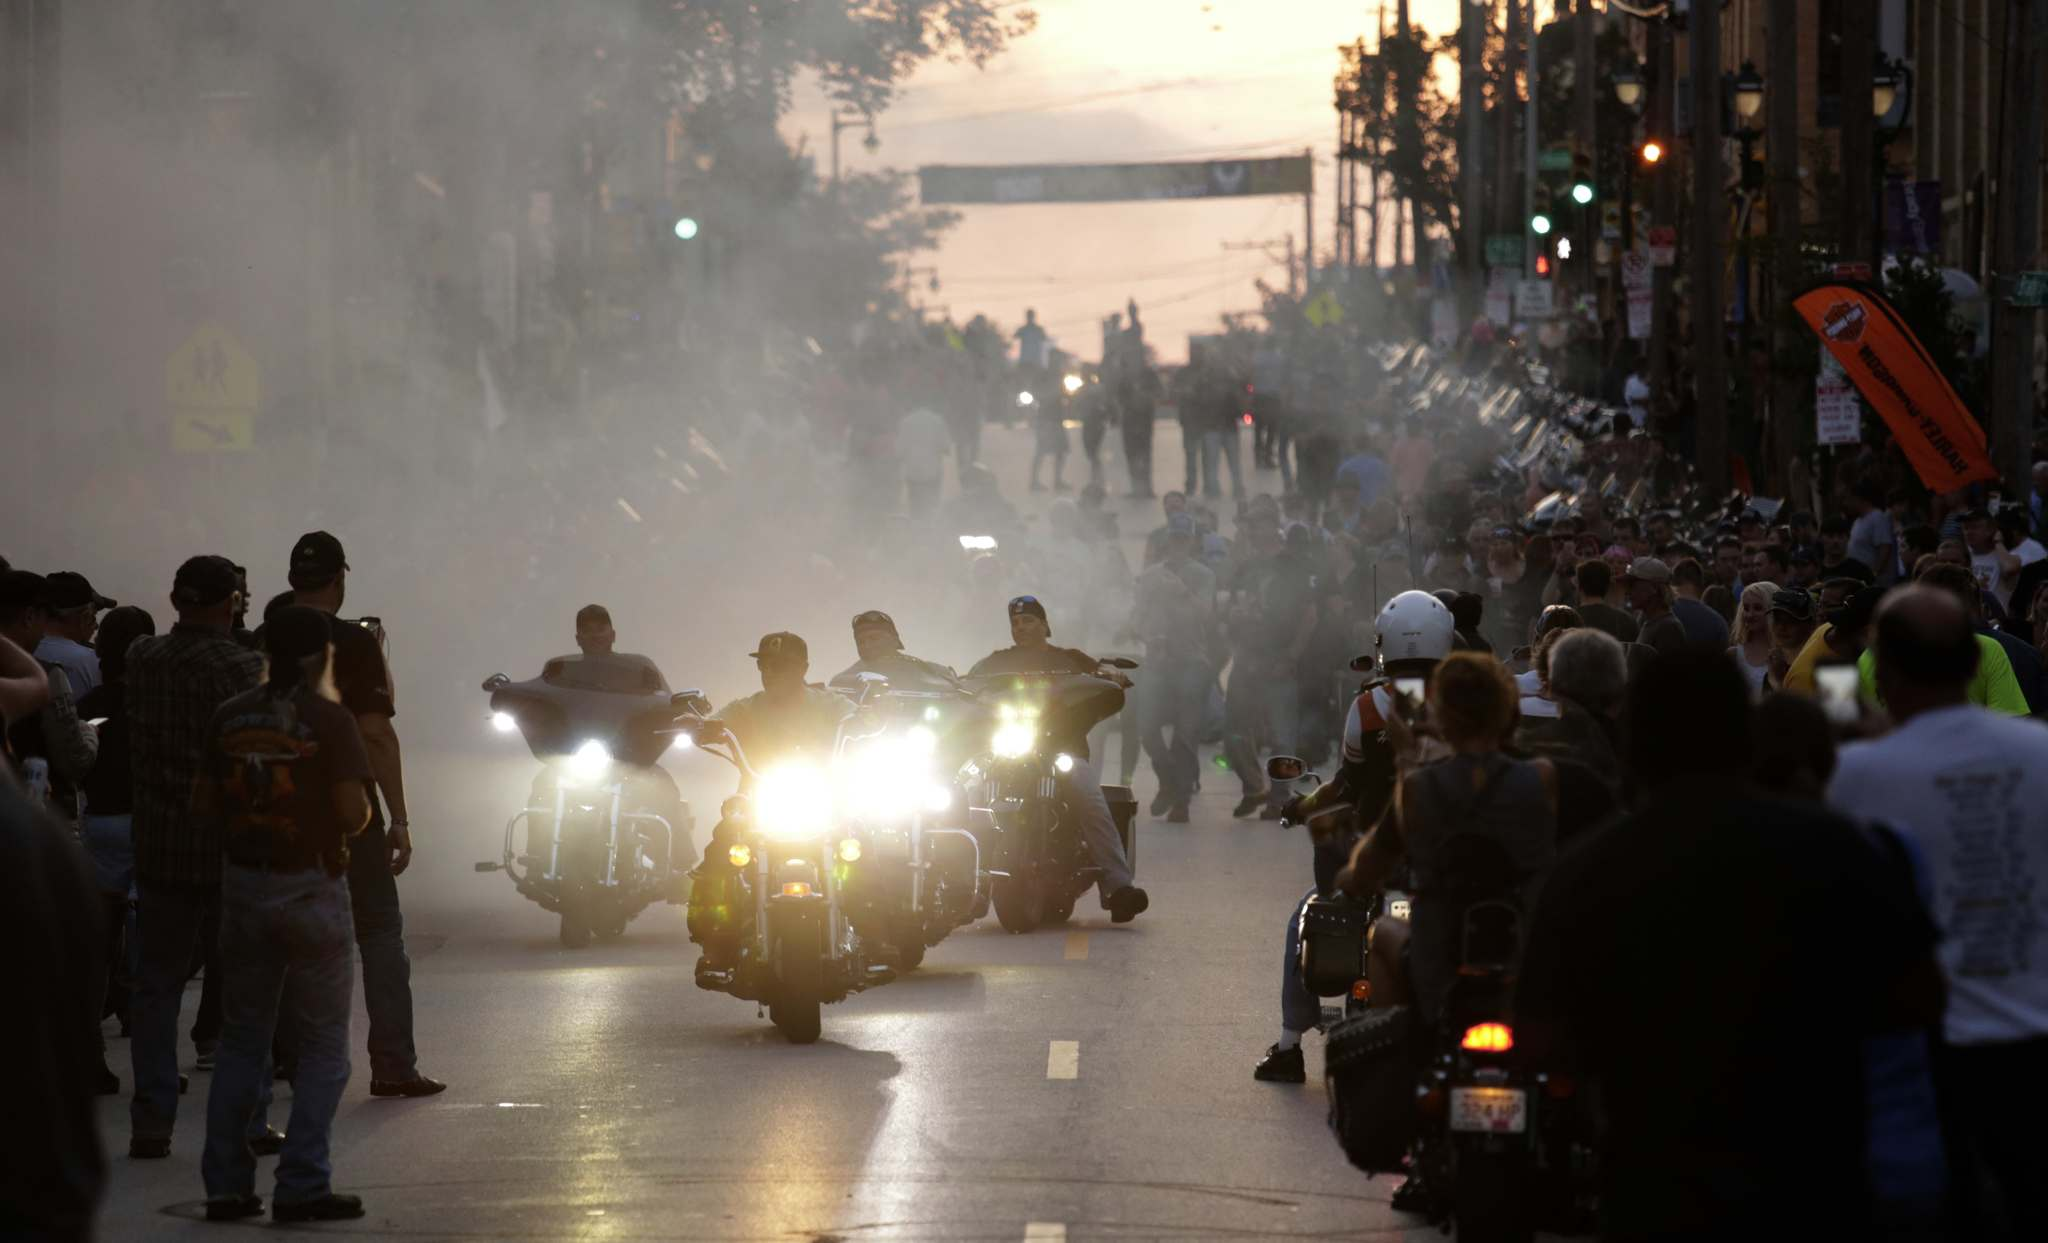 Darren Hauck / The Associated PressMotorcycle enthusiasts from around the world celebrated on Brady Street in Milwaukee during Harley-Davidson's 115th anniversary party.